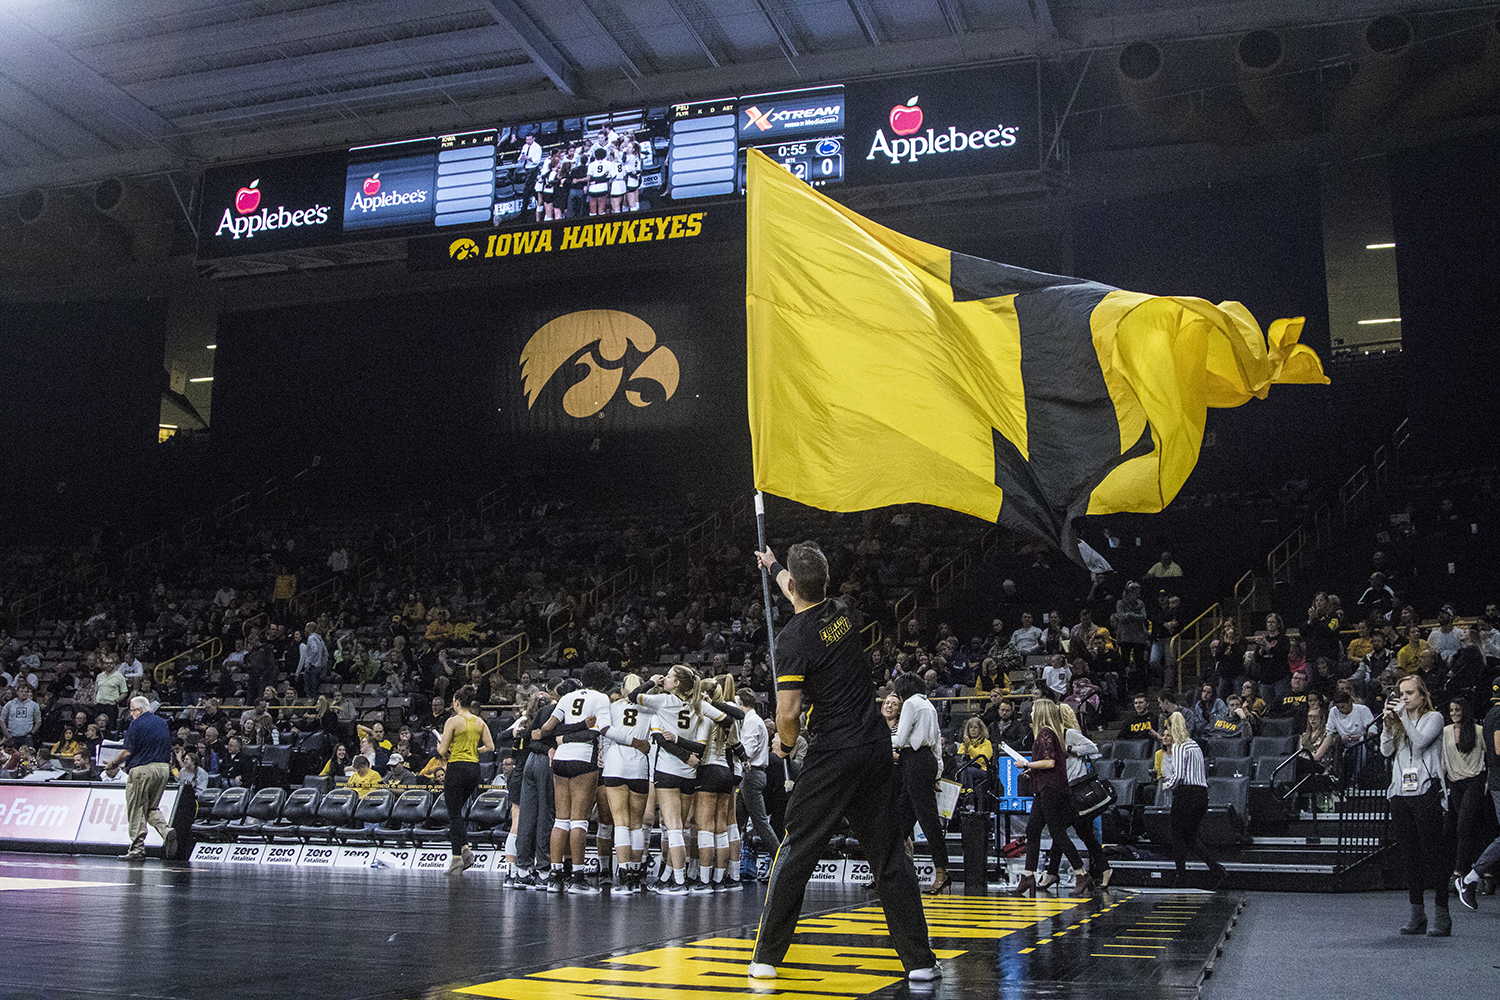 Iowa+spirit+squads+pump+up+the+crowd+during+a+volleyball+match+between+Iowa+and+Penn+State+at+Carver-Hawkeye+Arena+on+Saturday%2C+Nov.+3%2C+2018.+The+Hawkeyes+were+shut+out+by+the+Nittany+Lions%2C+3-0.